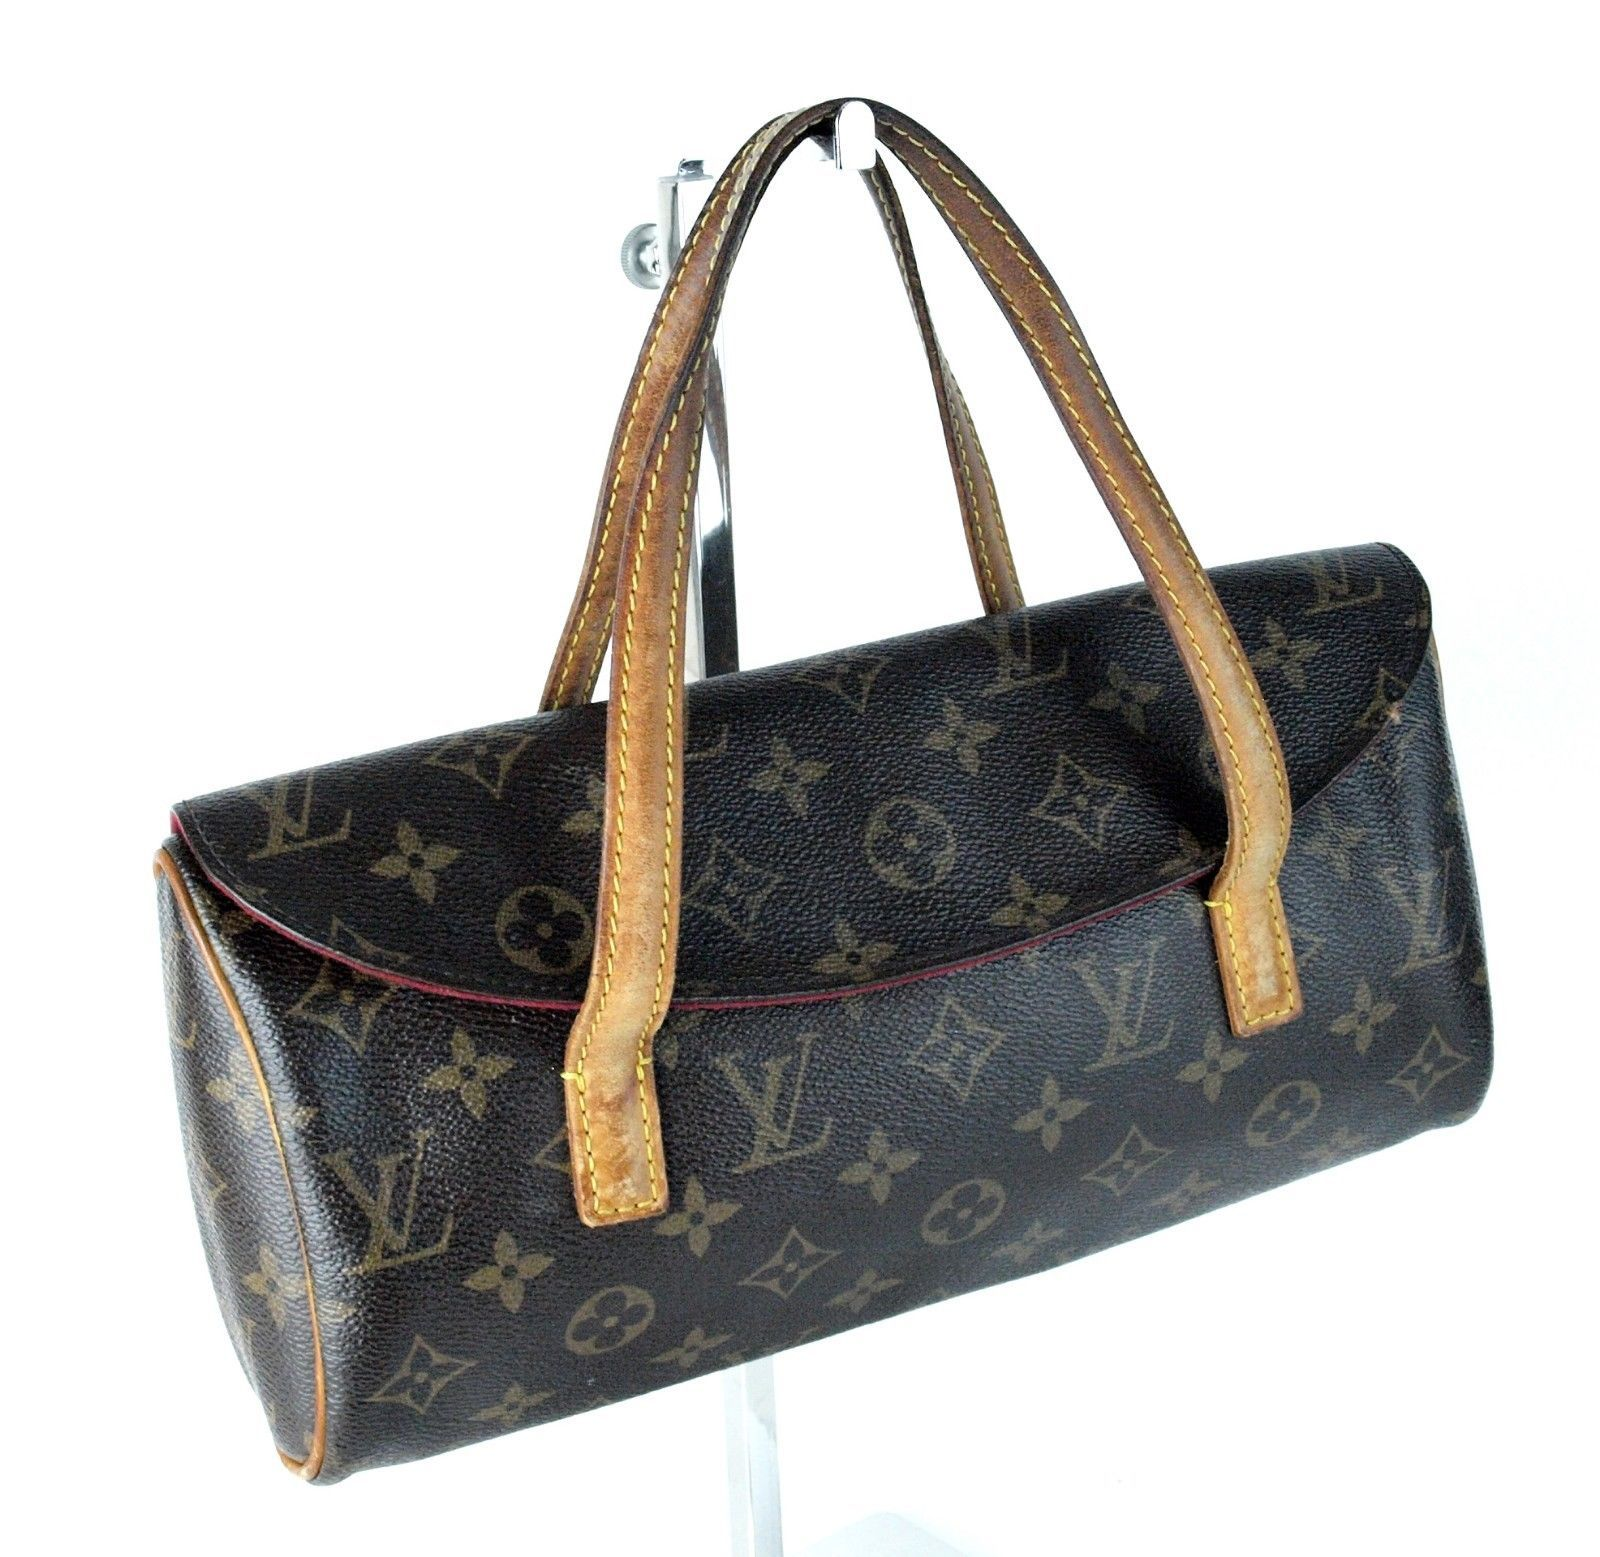 77595013b98c S l1600. S l1600. Previous. 100% Authentic LOUIS VUITTON Brown Monogram  Canvas Sonatine Bag France DU0023